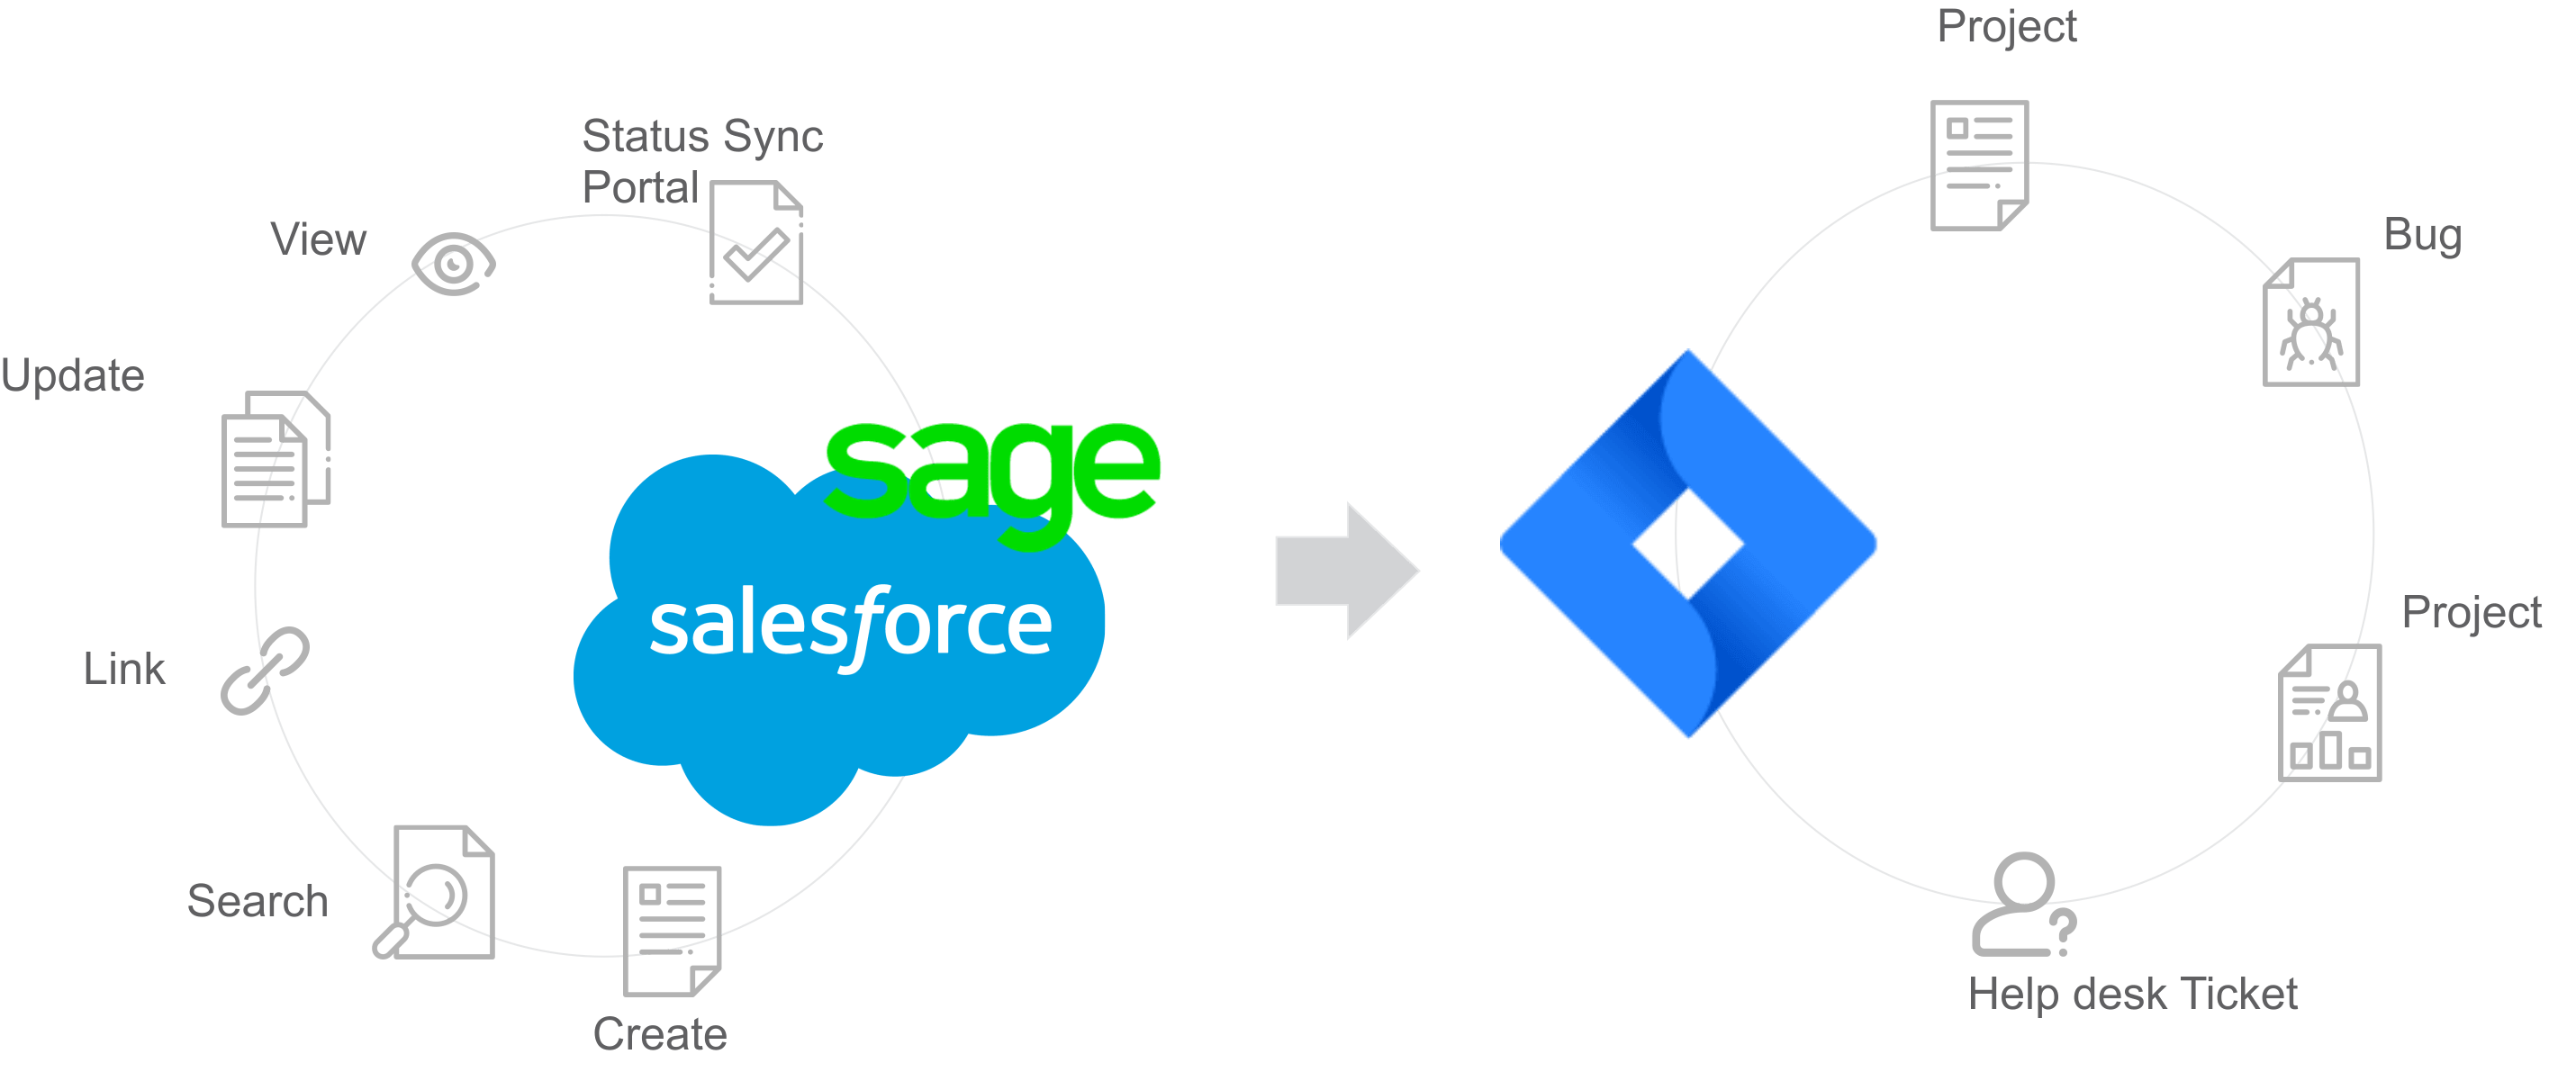 saelsforce-sage-jira-integration